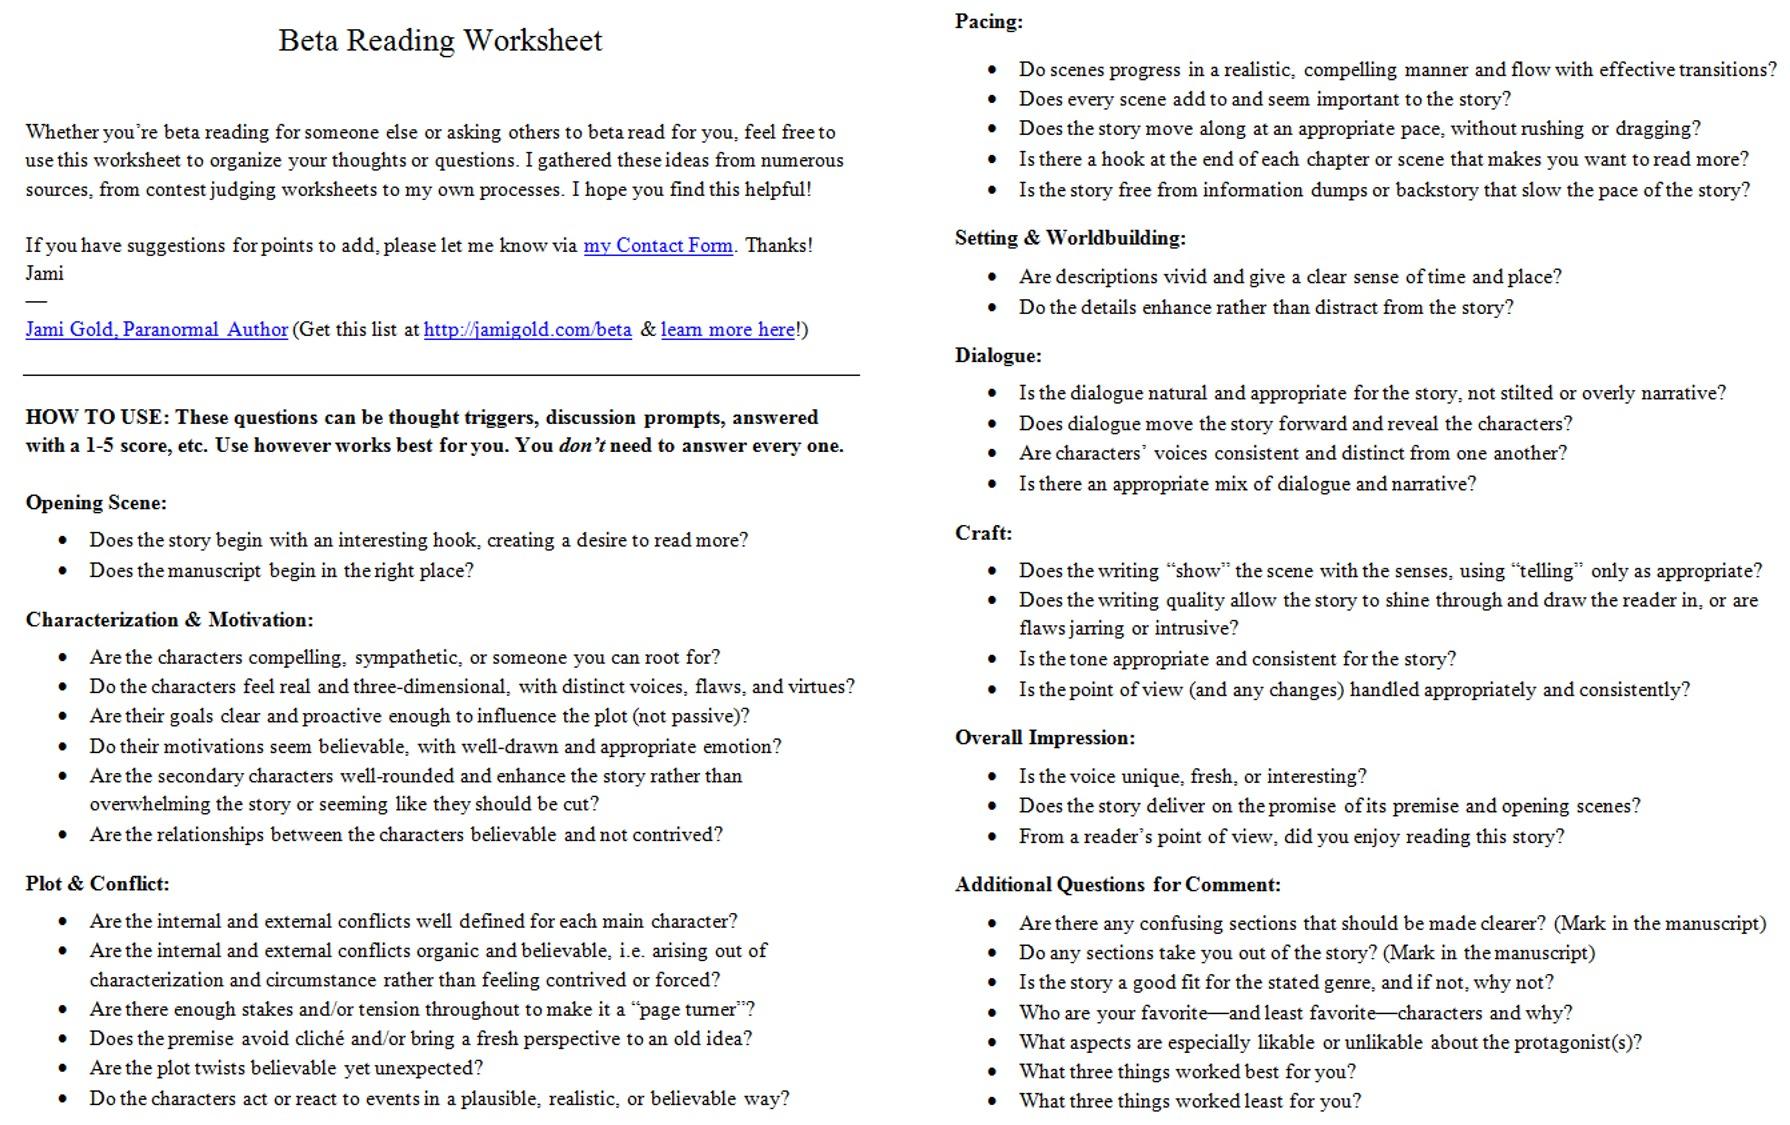 Aldiablosus  Ravishing Worksheets For Writers  Jami Gold Paranormal Author With Licious Screen Shot Of The Twopage Beta Reading Worksheet With Breathtaking Printable Number Worksheet Also Expanding Double Brackets Worksheet In Addition Counting In S Worksheet And In And Out Math Worksheets As Well As Adverb Of Place Worksheet Additionally Free Printable Long Vowel Worksheets From Jamigoldcom With Aldiablosus  Licious Worksheets For Writers  Jami Gold Paranormal Author With Breathtaking Screen Shot Of The Twopage Beta Reading Worksheet And Ravishing Printable Number Worksheet Also Expanding Double Brackets Worksheet In Addition Counting In S Worksheet From Jamigoldcom